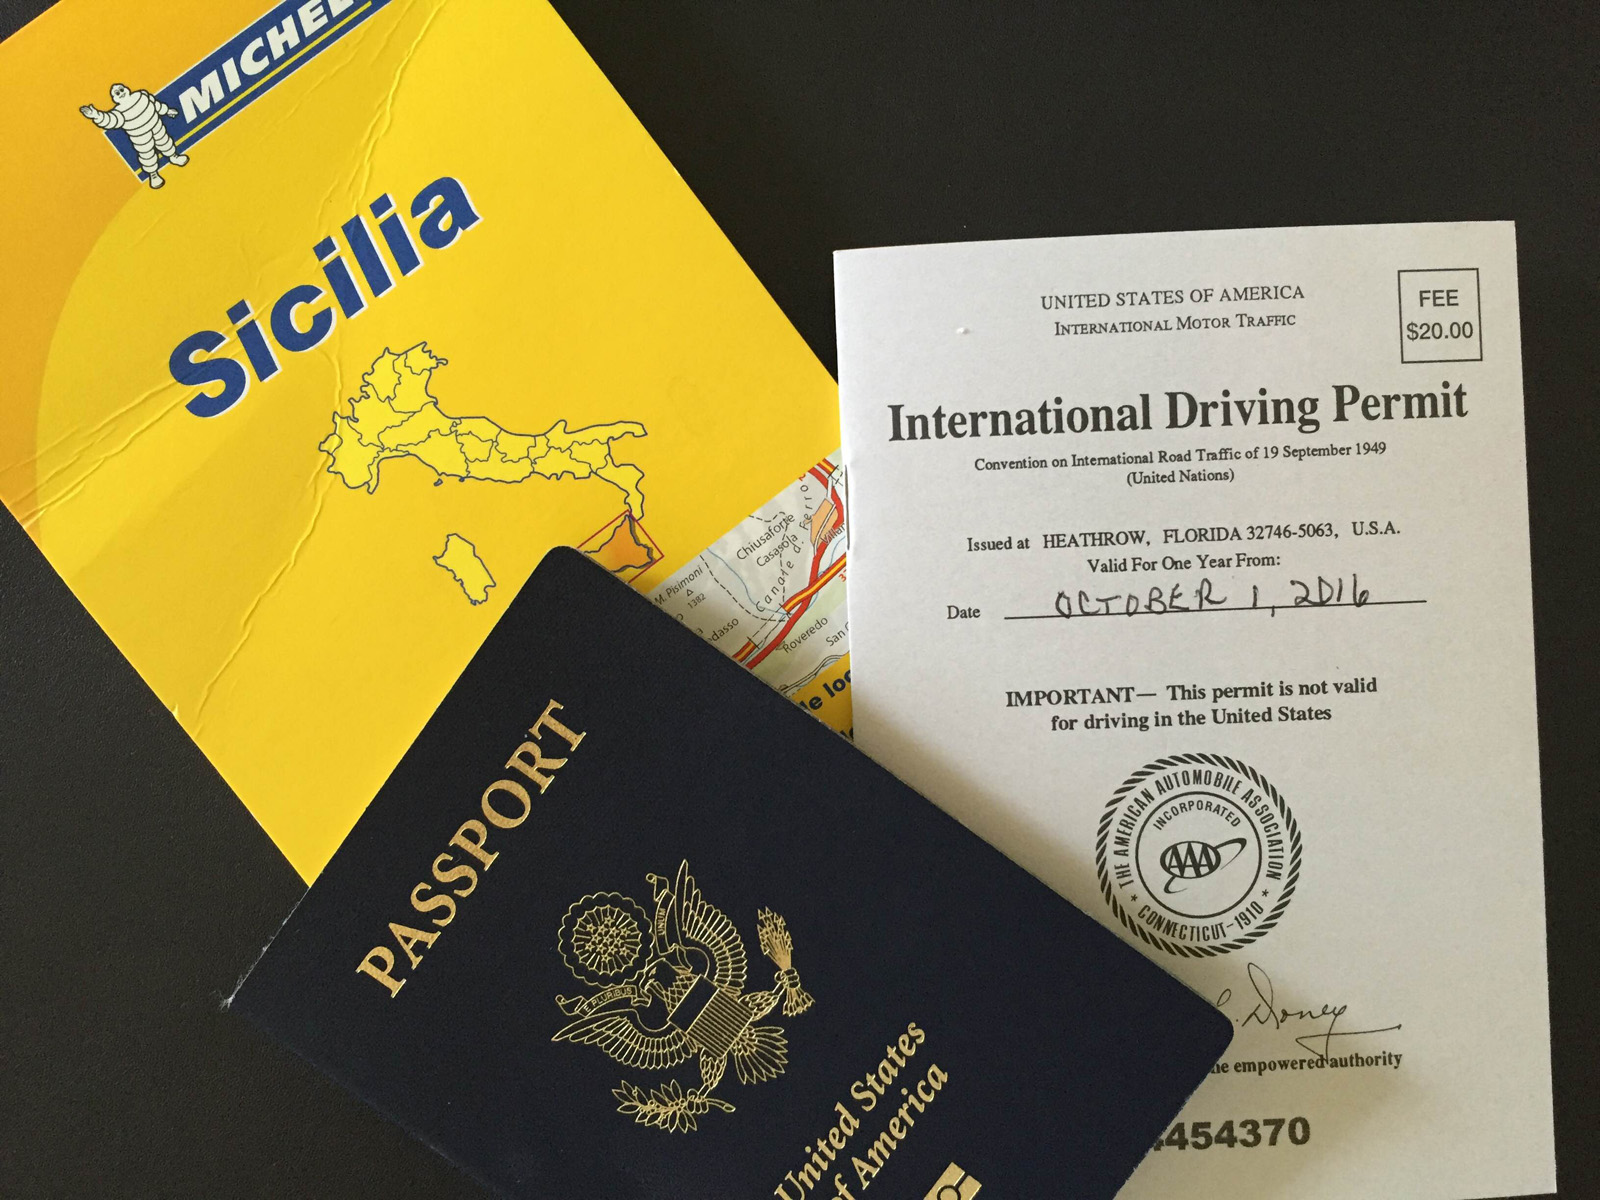 Headed to Sicily – Travel Plans